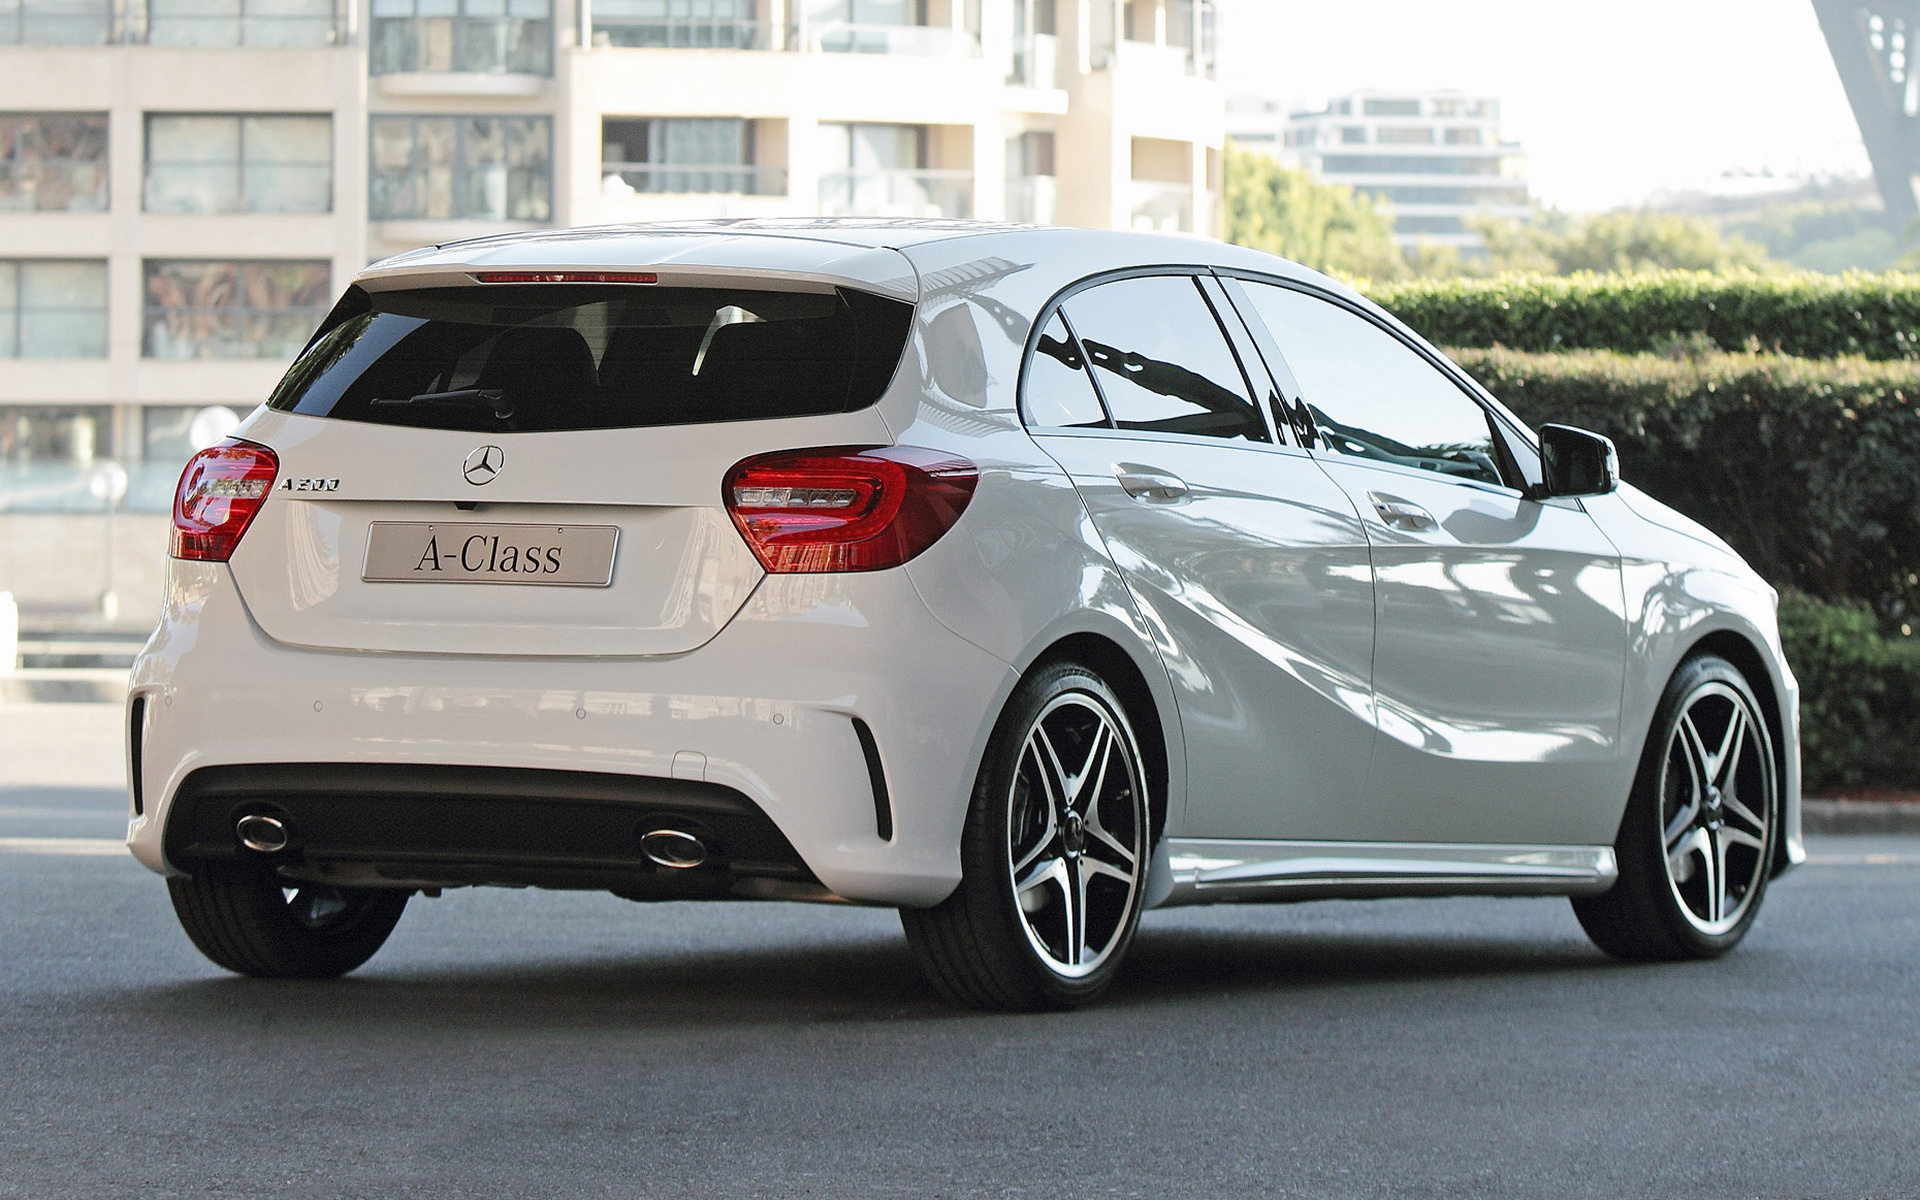 2012 mercedes benz a class amg sport au wallpapers and. Black Bedroom Furniture Sets. Home Design Ideas